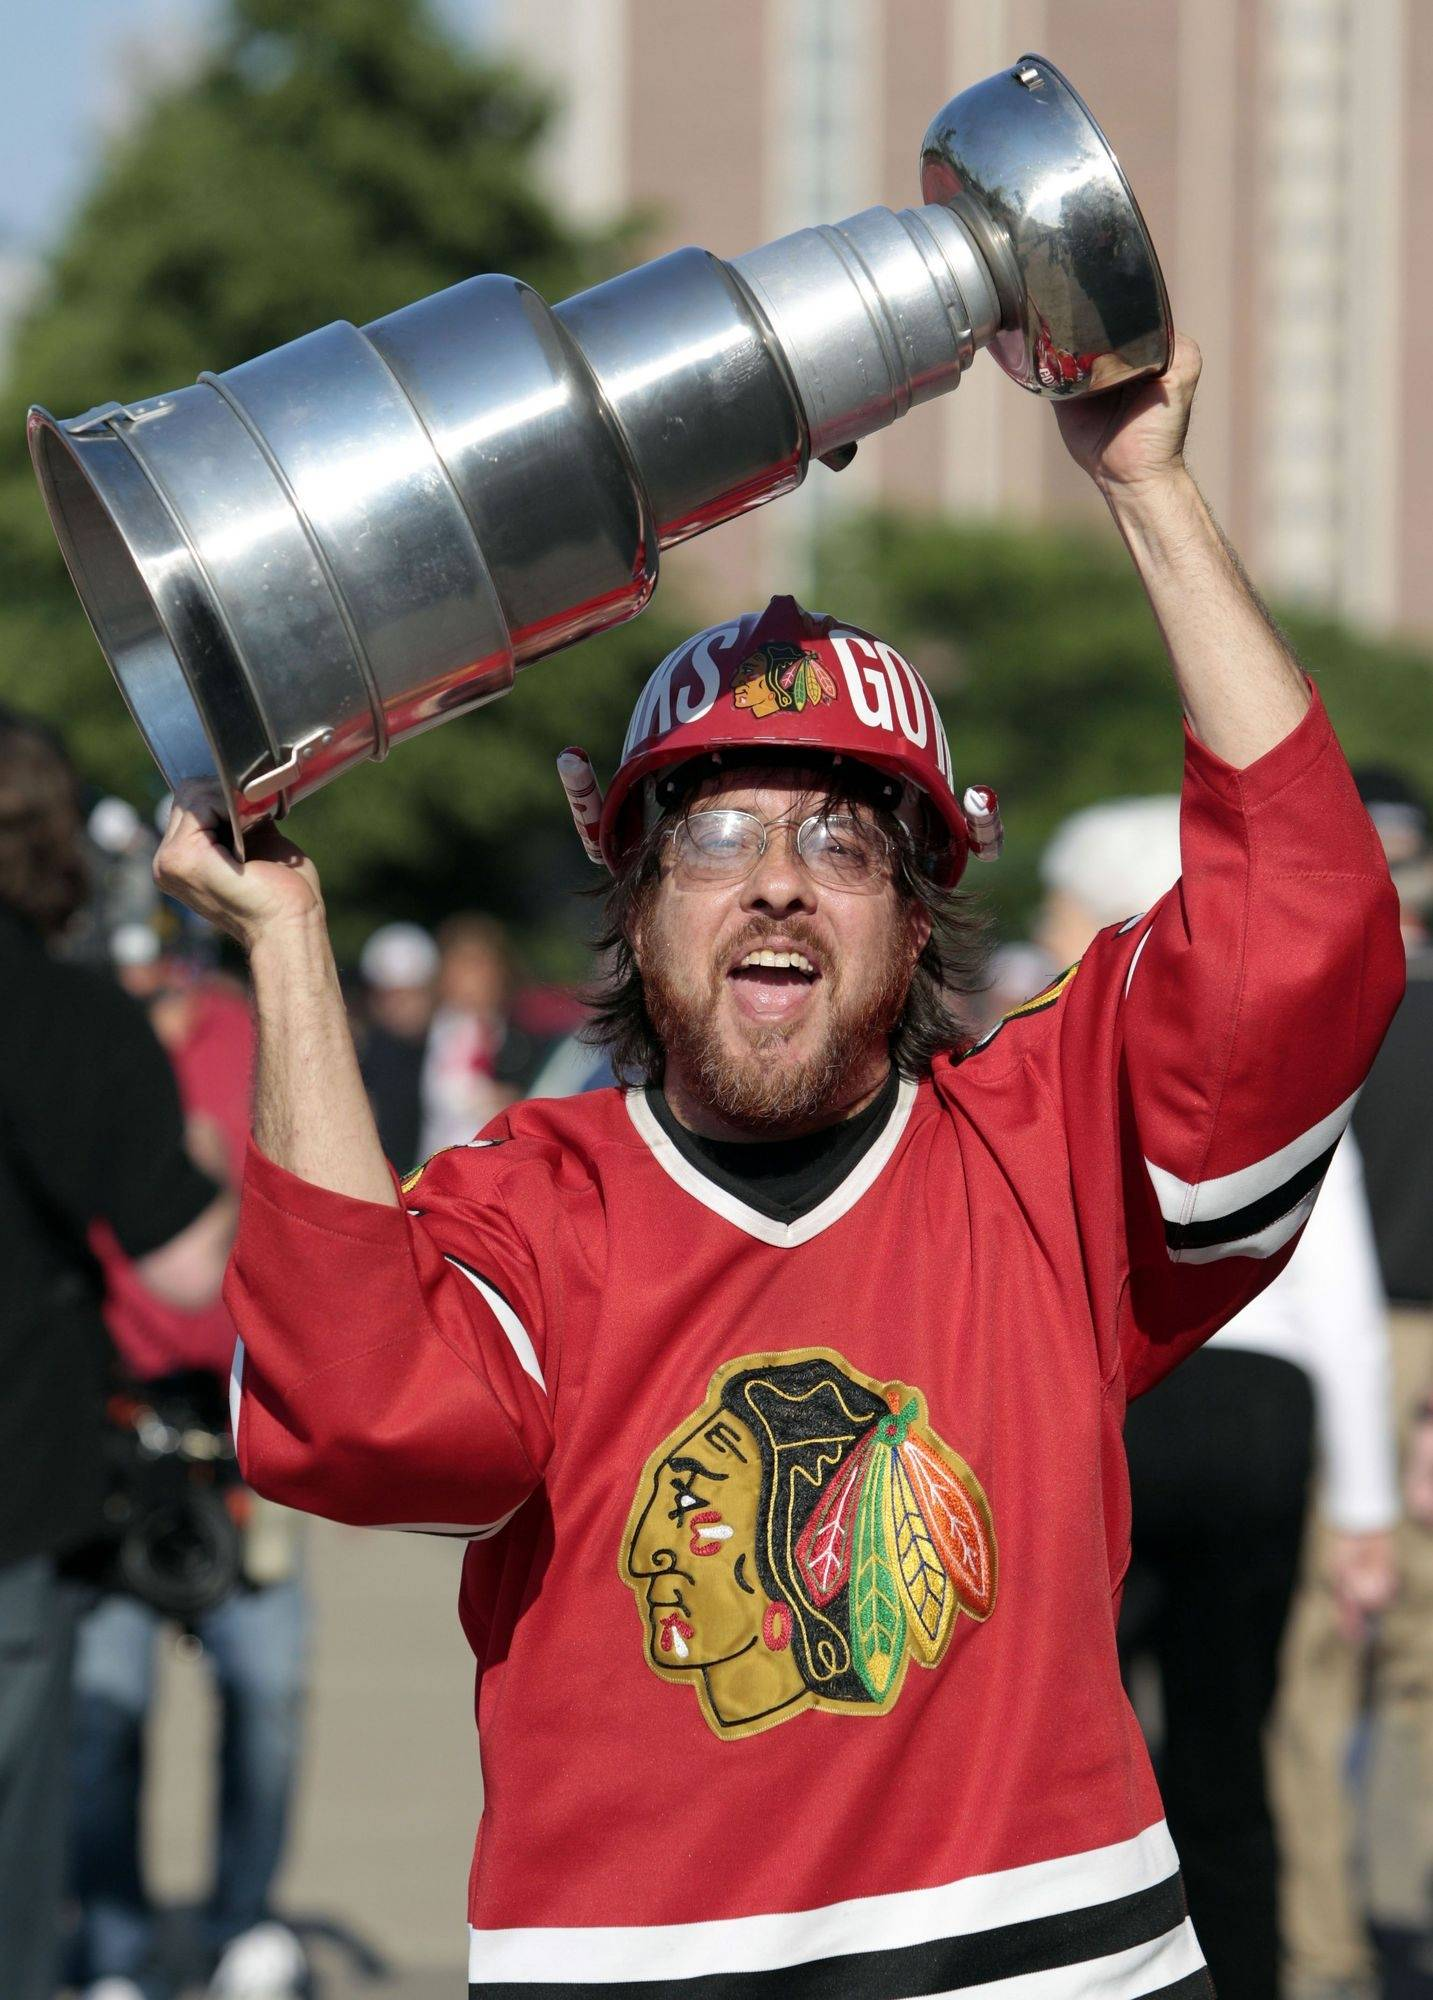 A Chicago Blackhawks fan carries his own version of the Stanley Cup as he arrives at the United Center for Game 1 of the Stanley Cup hockey finals between the Blackhawks and the Philadelphia Flyers.